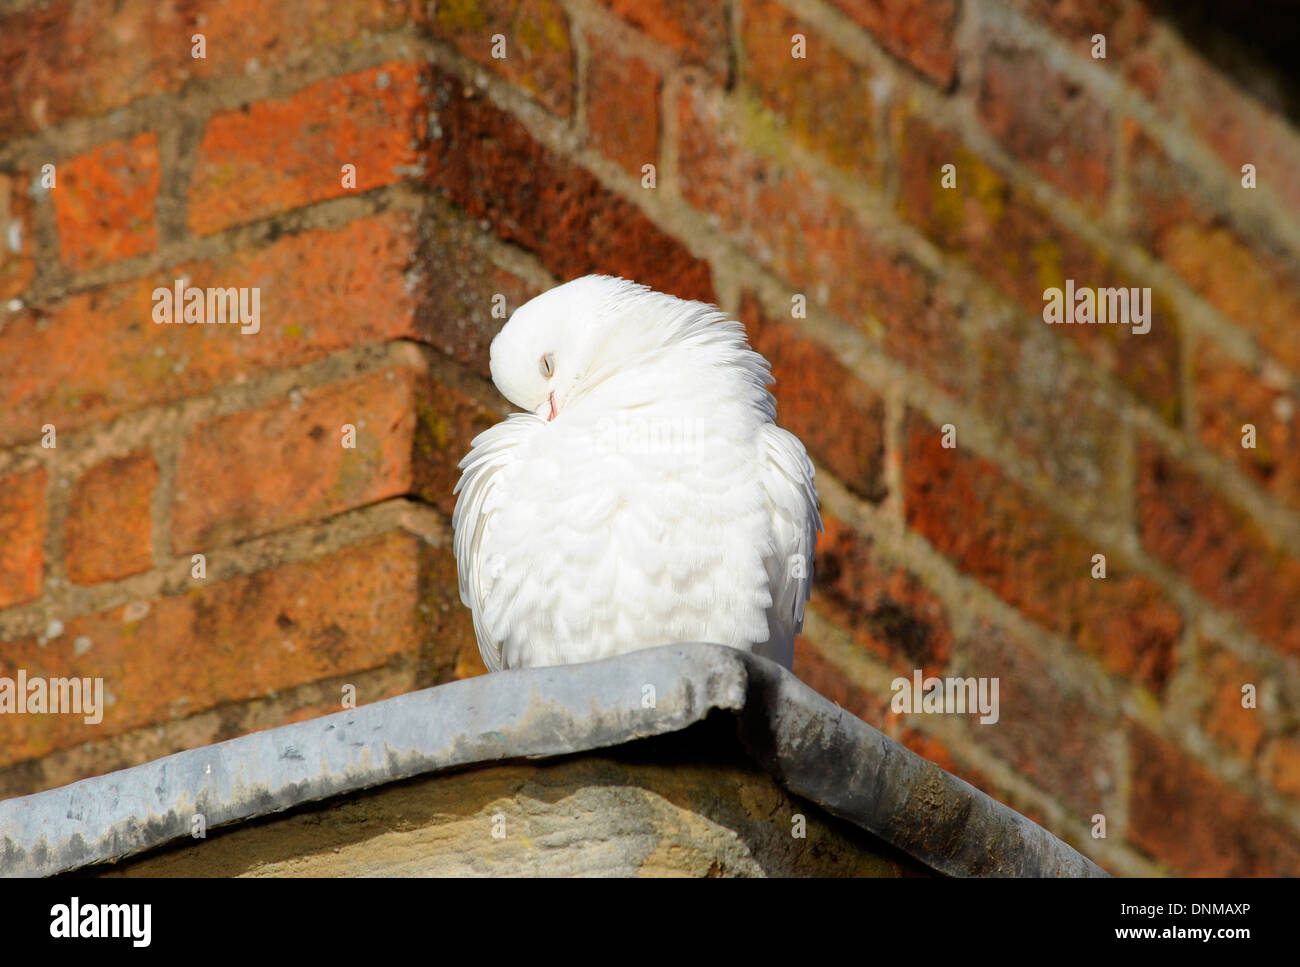 Adult white dove preening its feathers. Stock Photo